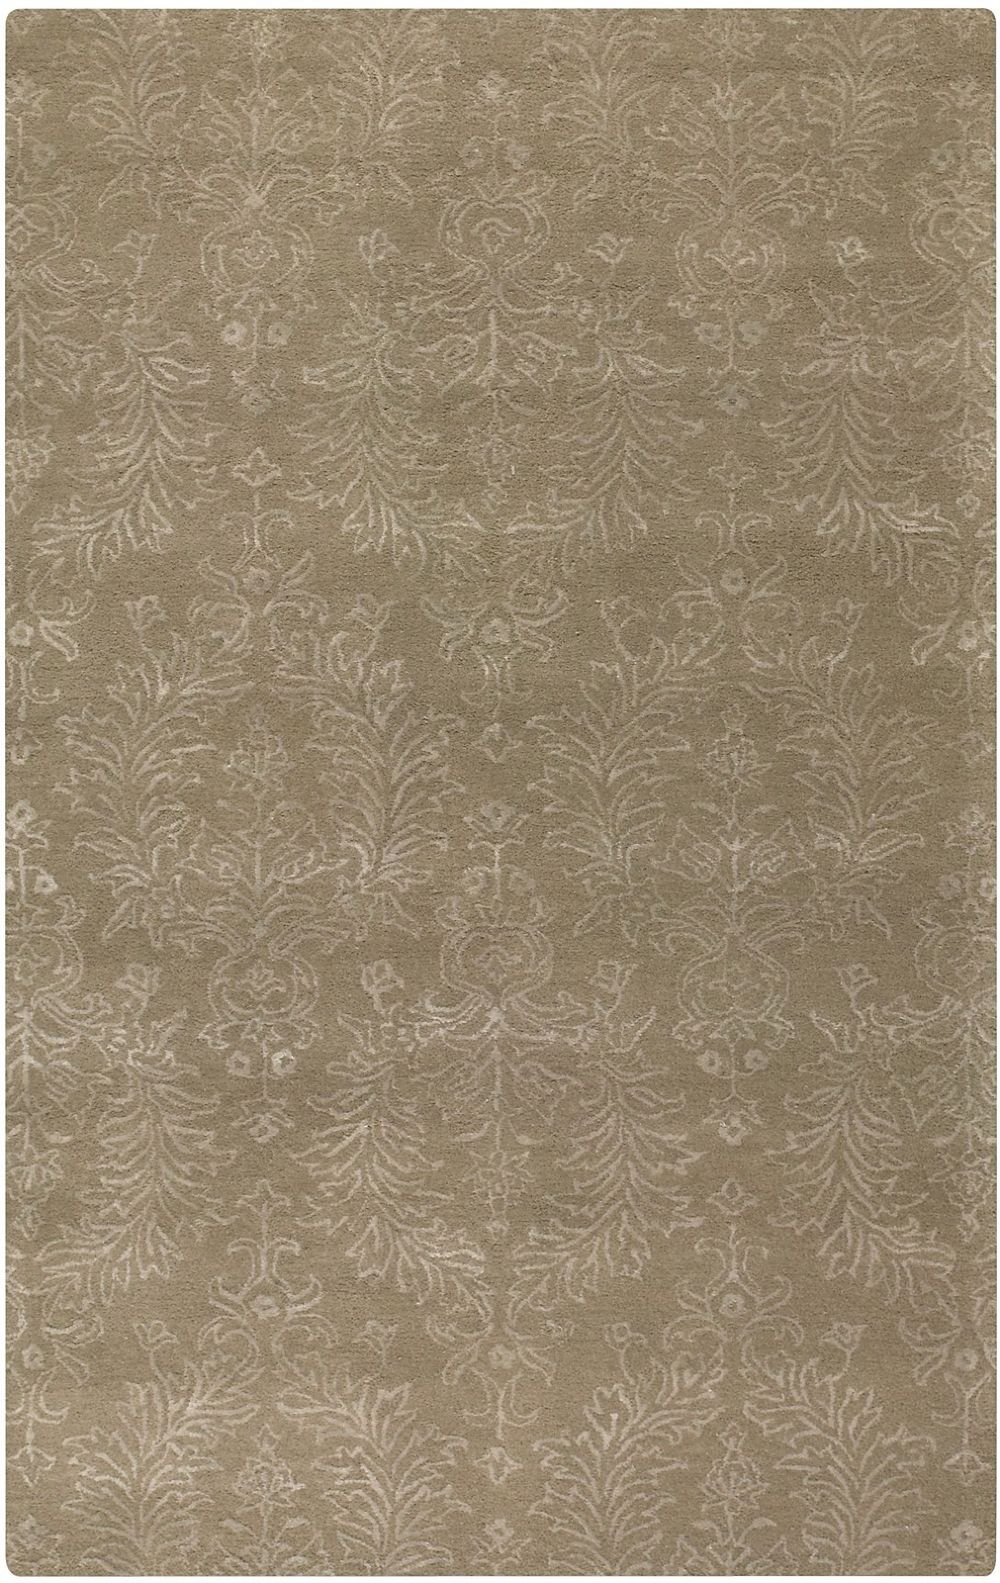 uttermost paris transitional area rug collection